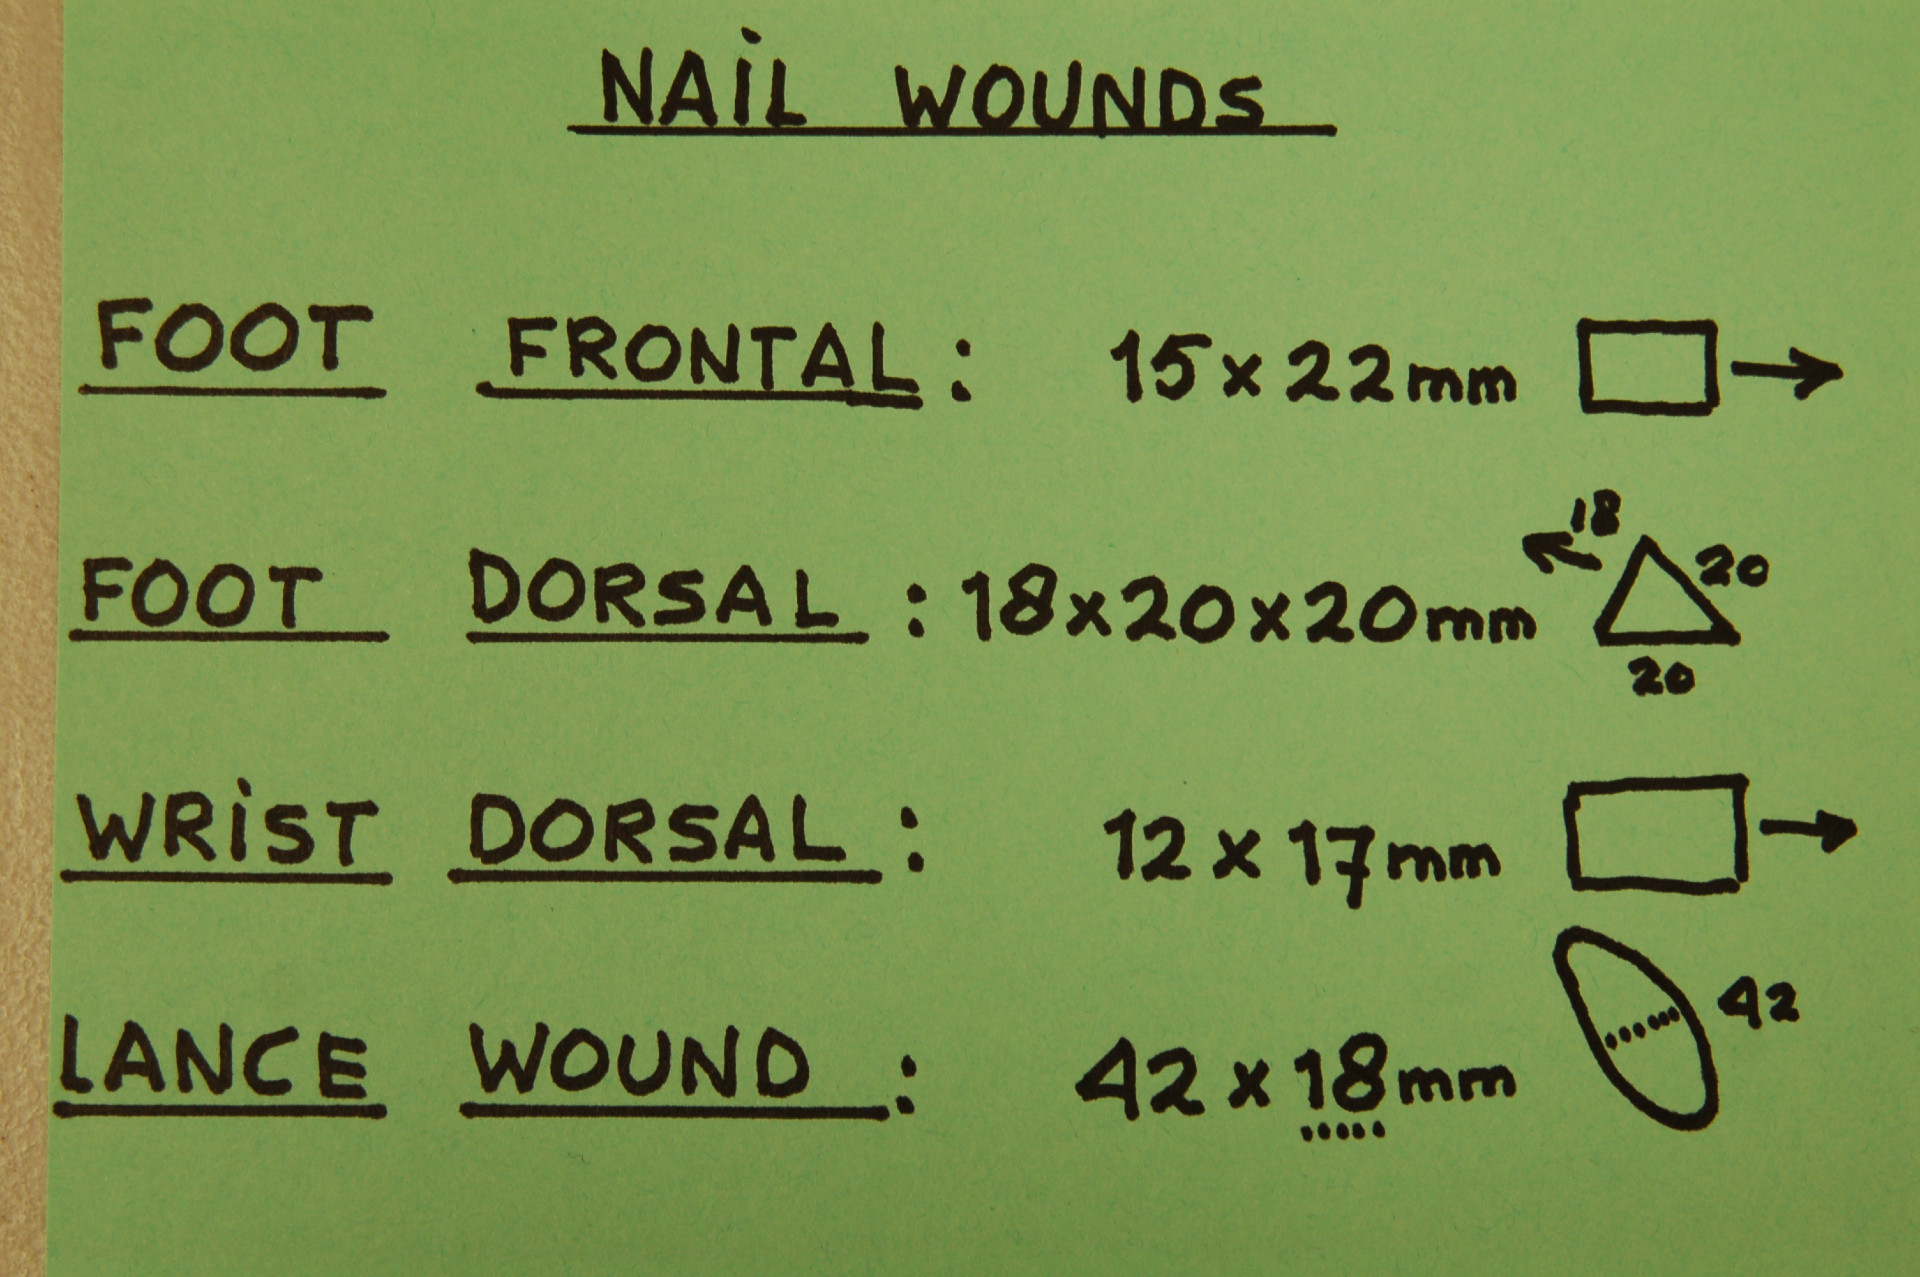 Measurements of the 3 nail wounds